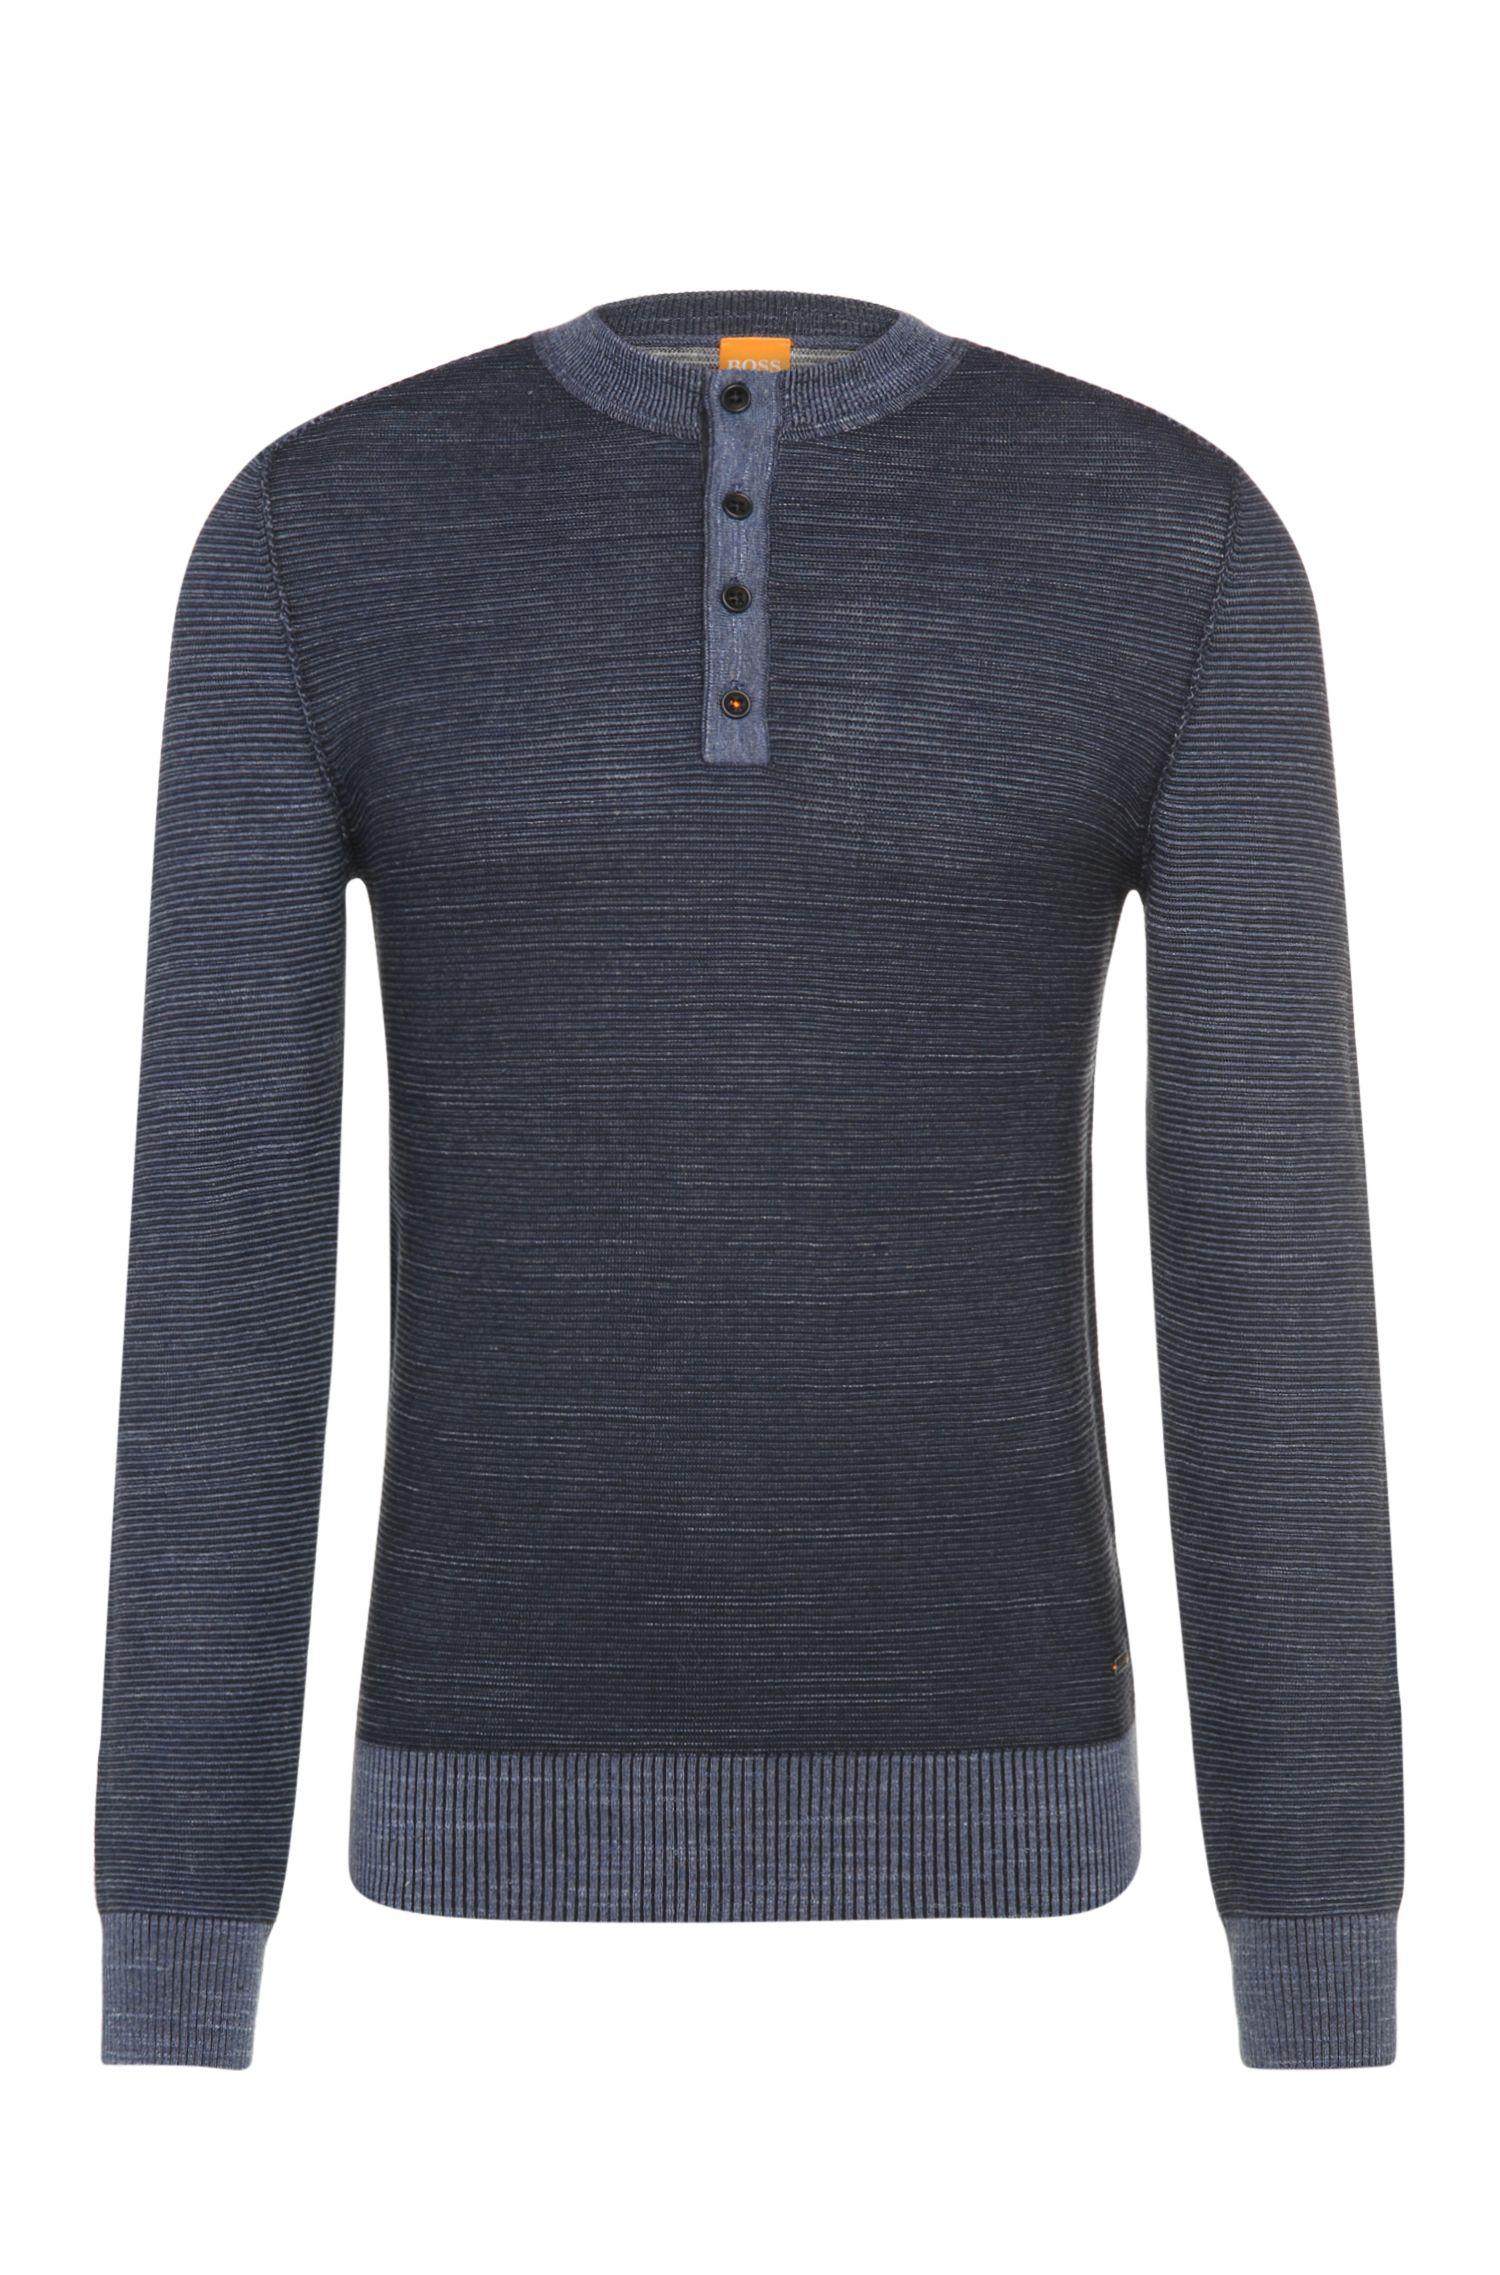 'Kenhenry' | Cotton Henley Sweater